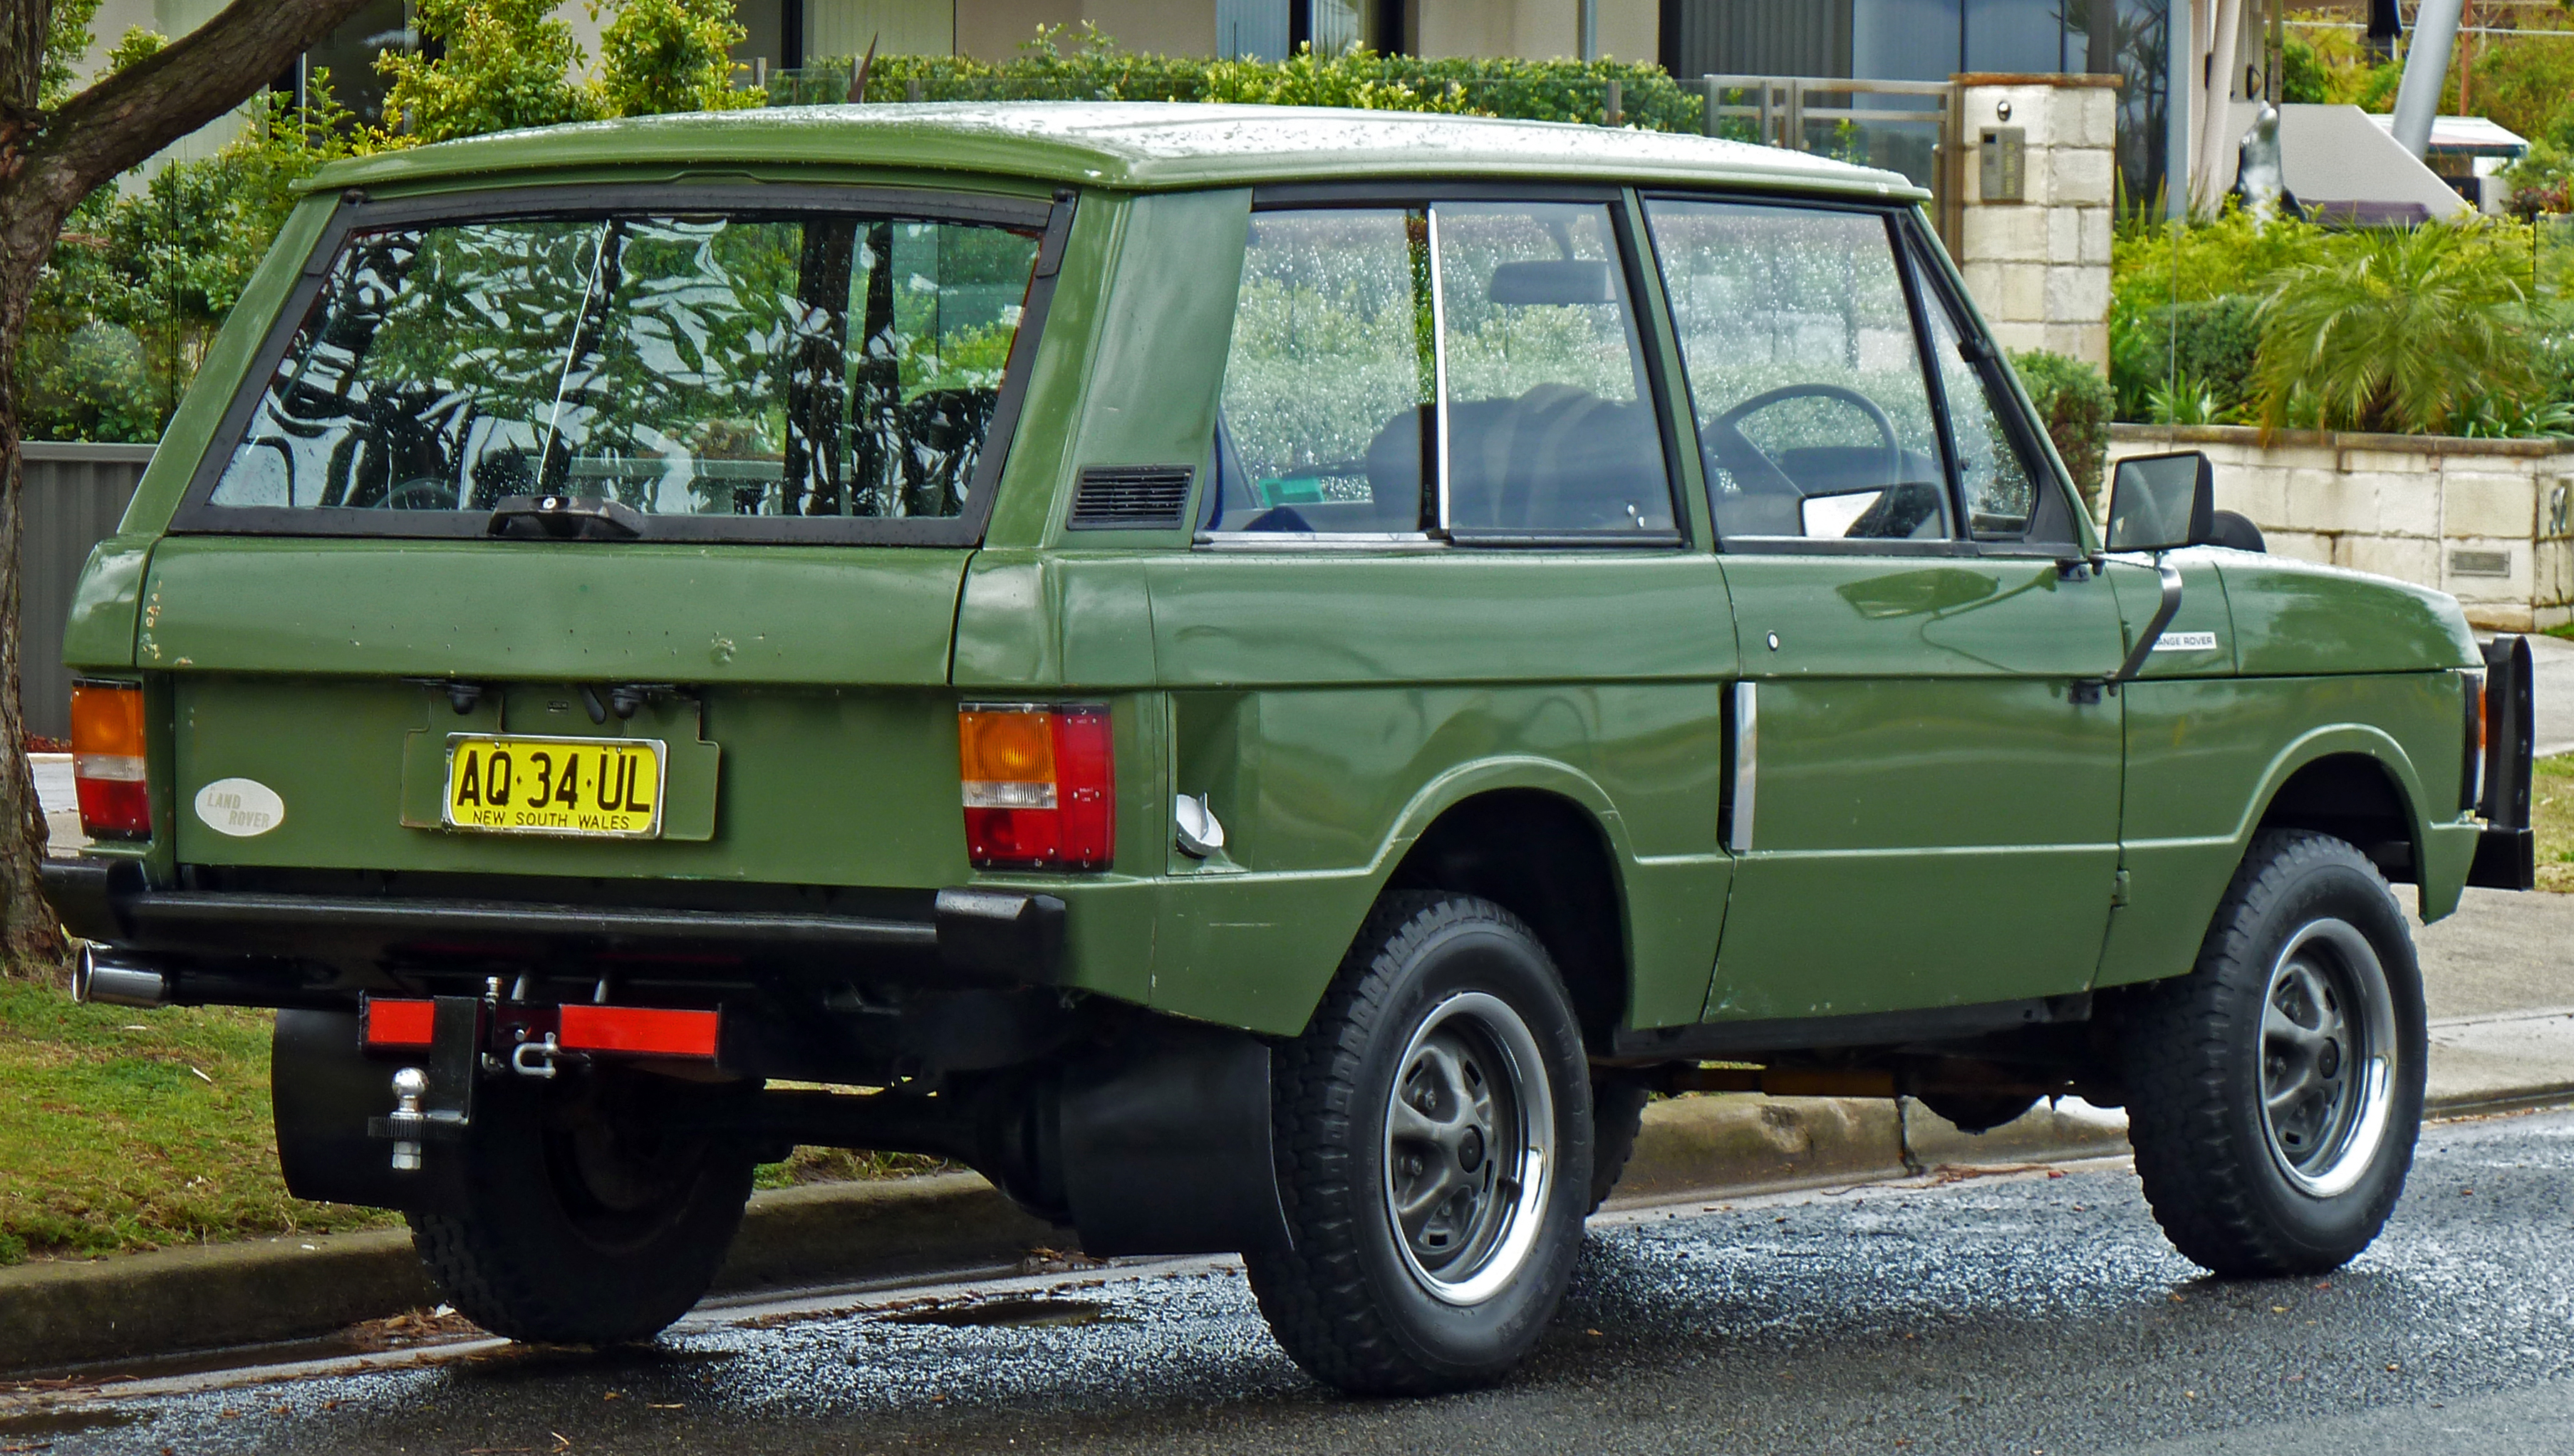 1991 Land Rover Range Rover Information and photos ZombieDrive